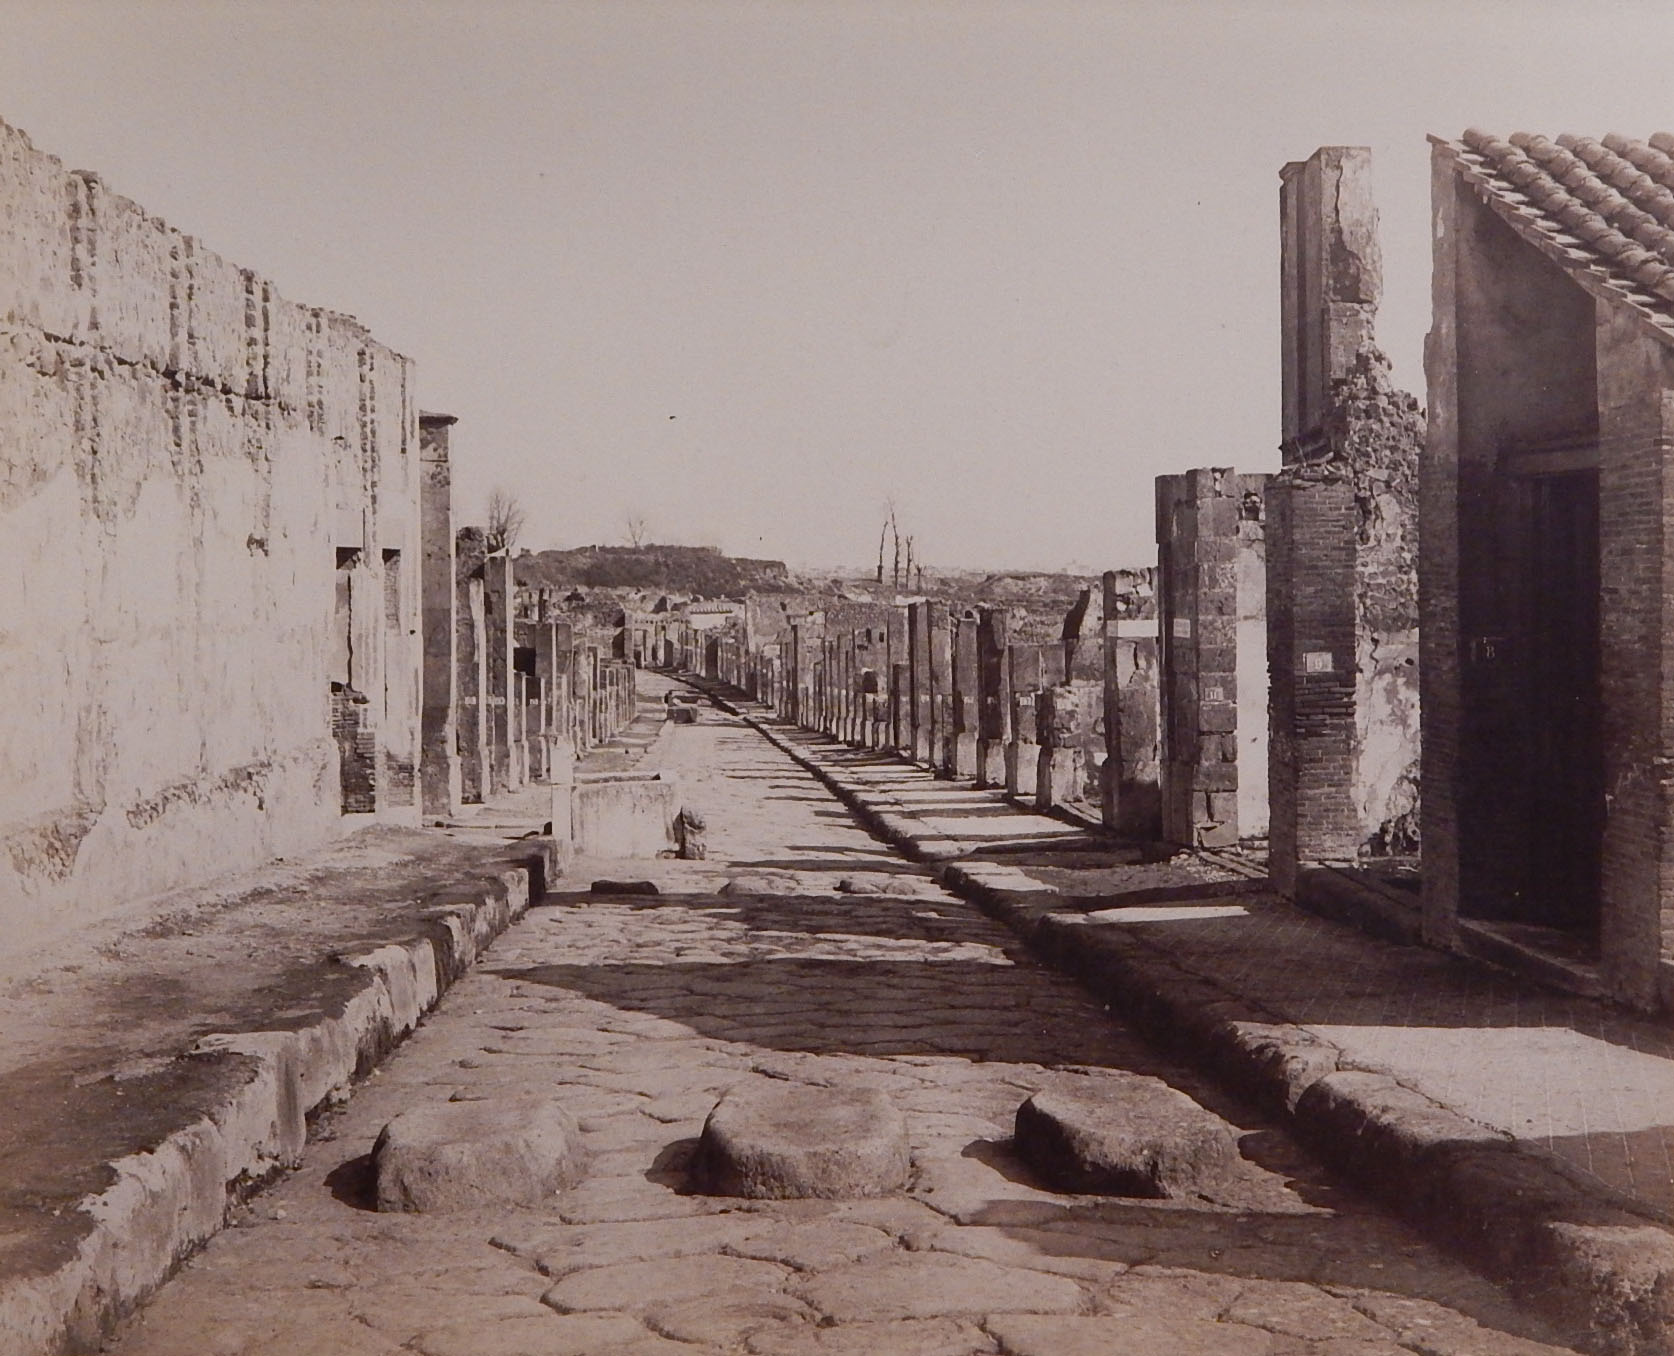 Photo by G. Sommer of the ruins of Pompeii